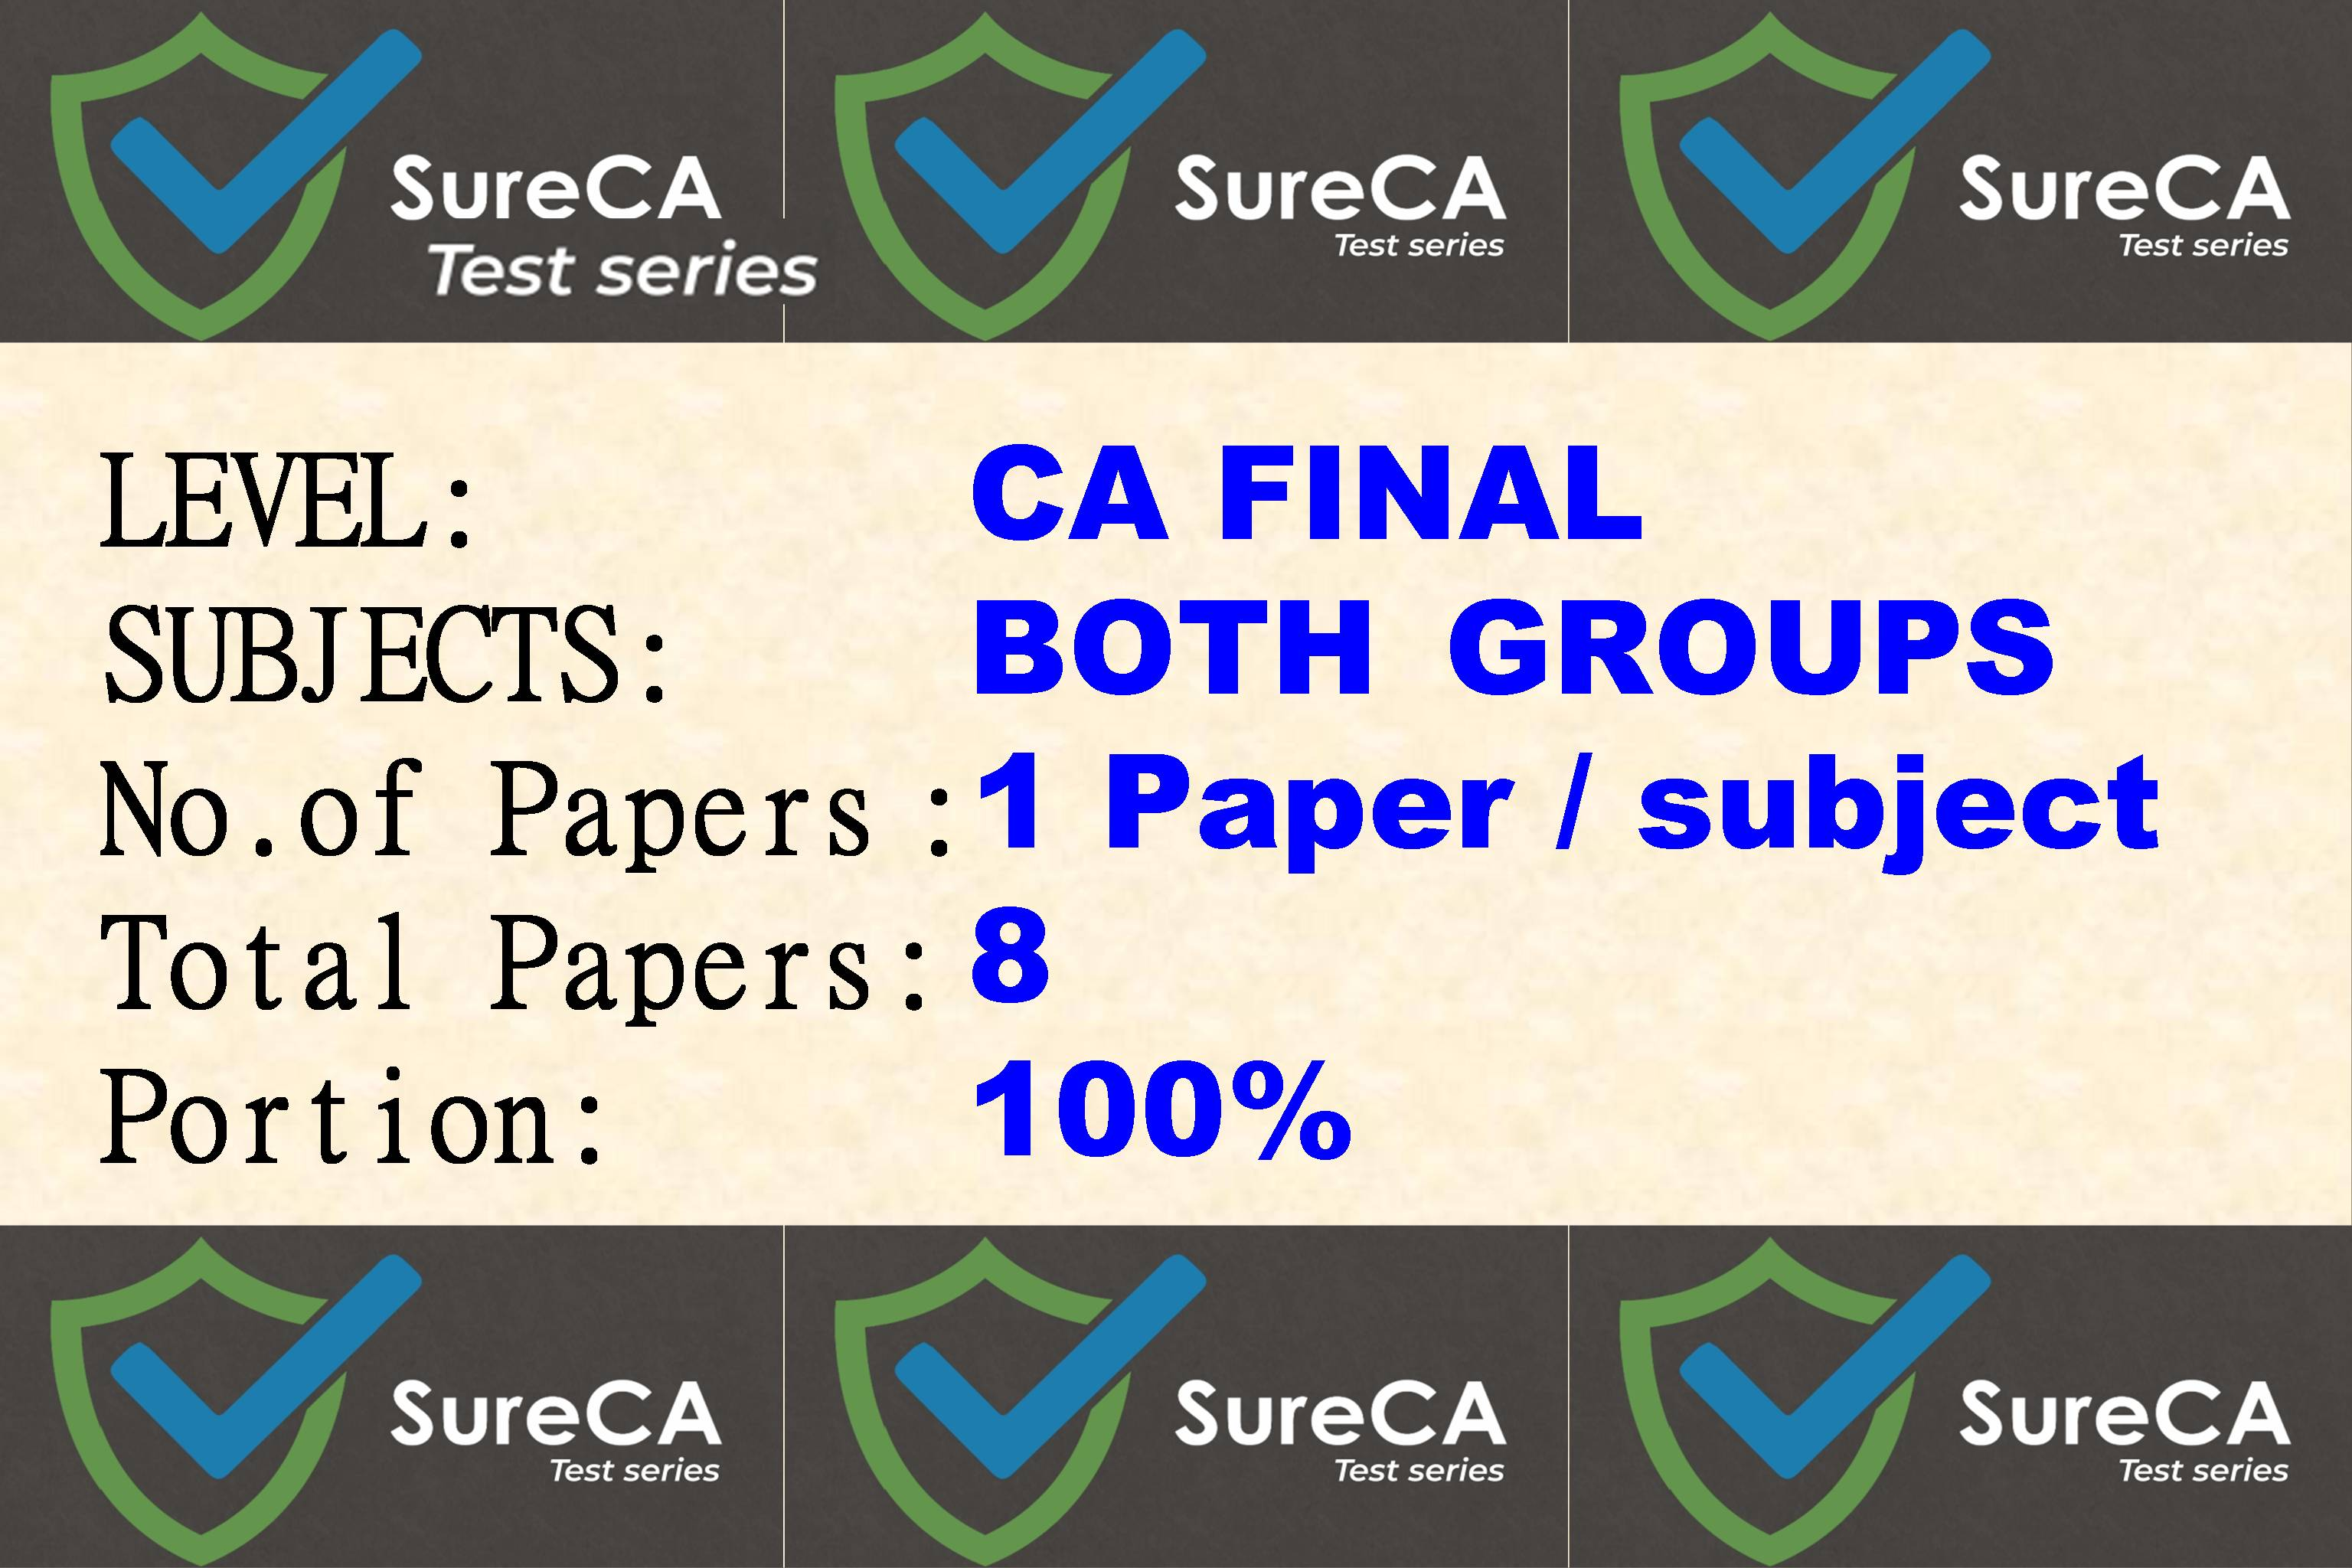 #4 –  SURE CA – CAFINAL – Test Series – 8 subjects – 8 Papers